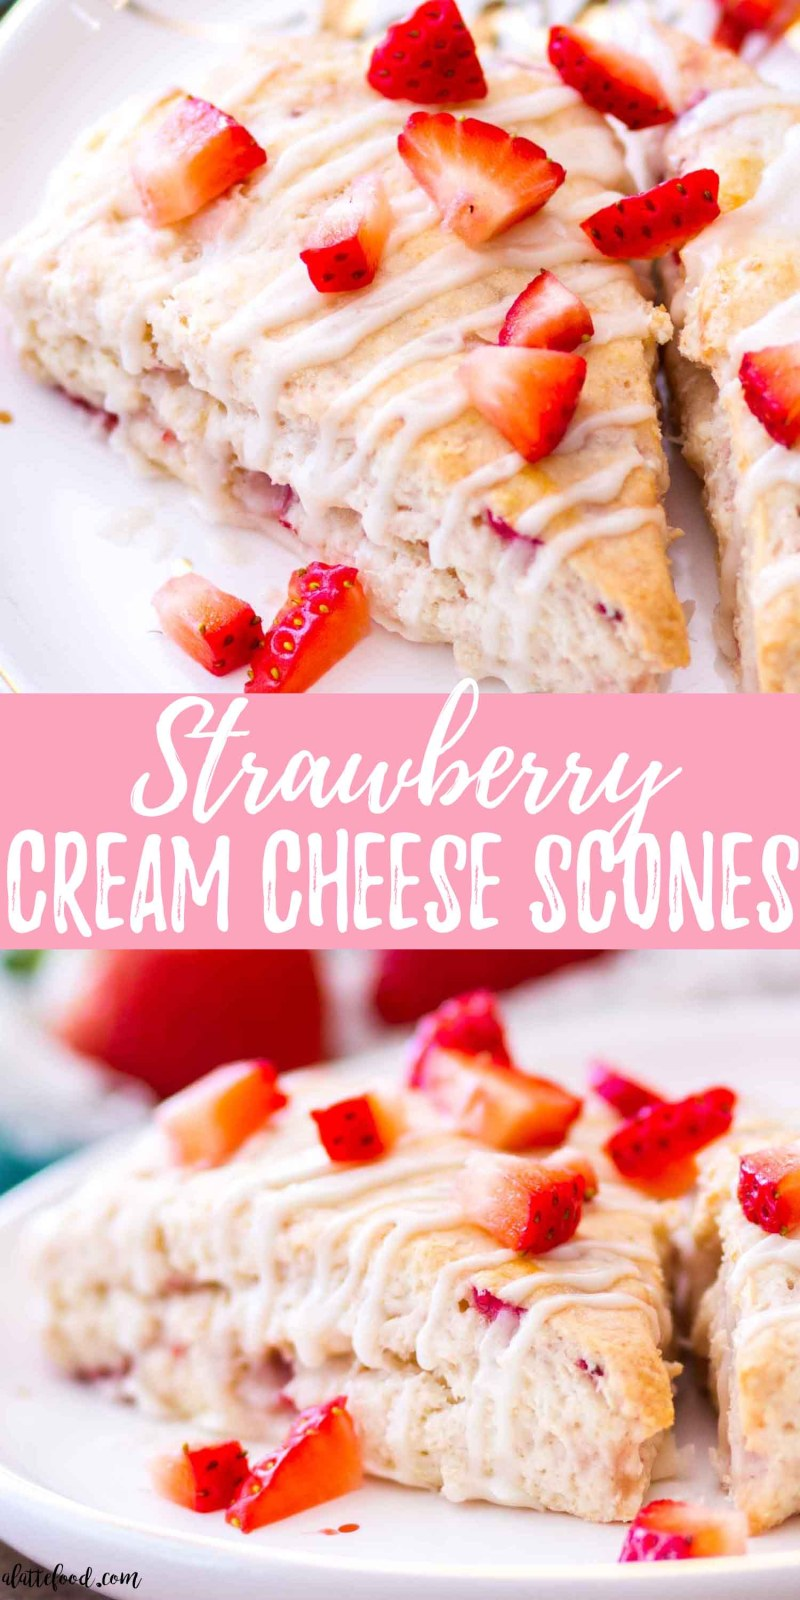 These homemade strawberry cream cheese scones are filled with fresh strawberries and topped with a vanilla glaze. Cream cheese gives these strawberry scones an unbelievably rich, soft texture, making this my favorite go-to scone recipe! These strawberry cream cheese scones are perfect for breakfast, brunch, or an afternoon snack!